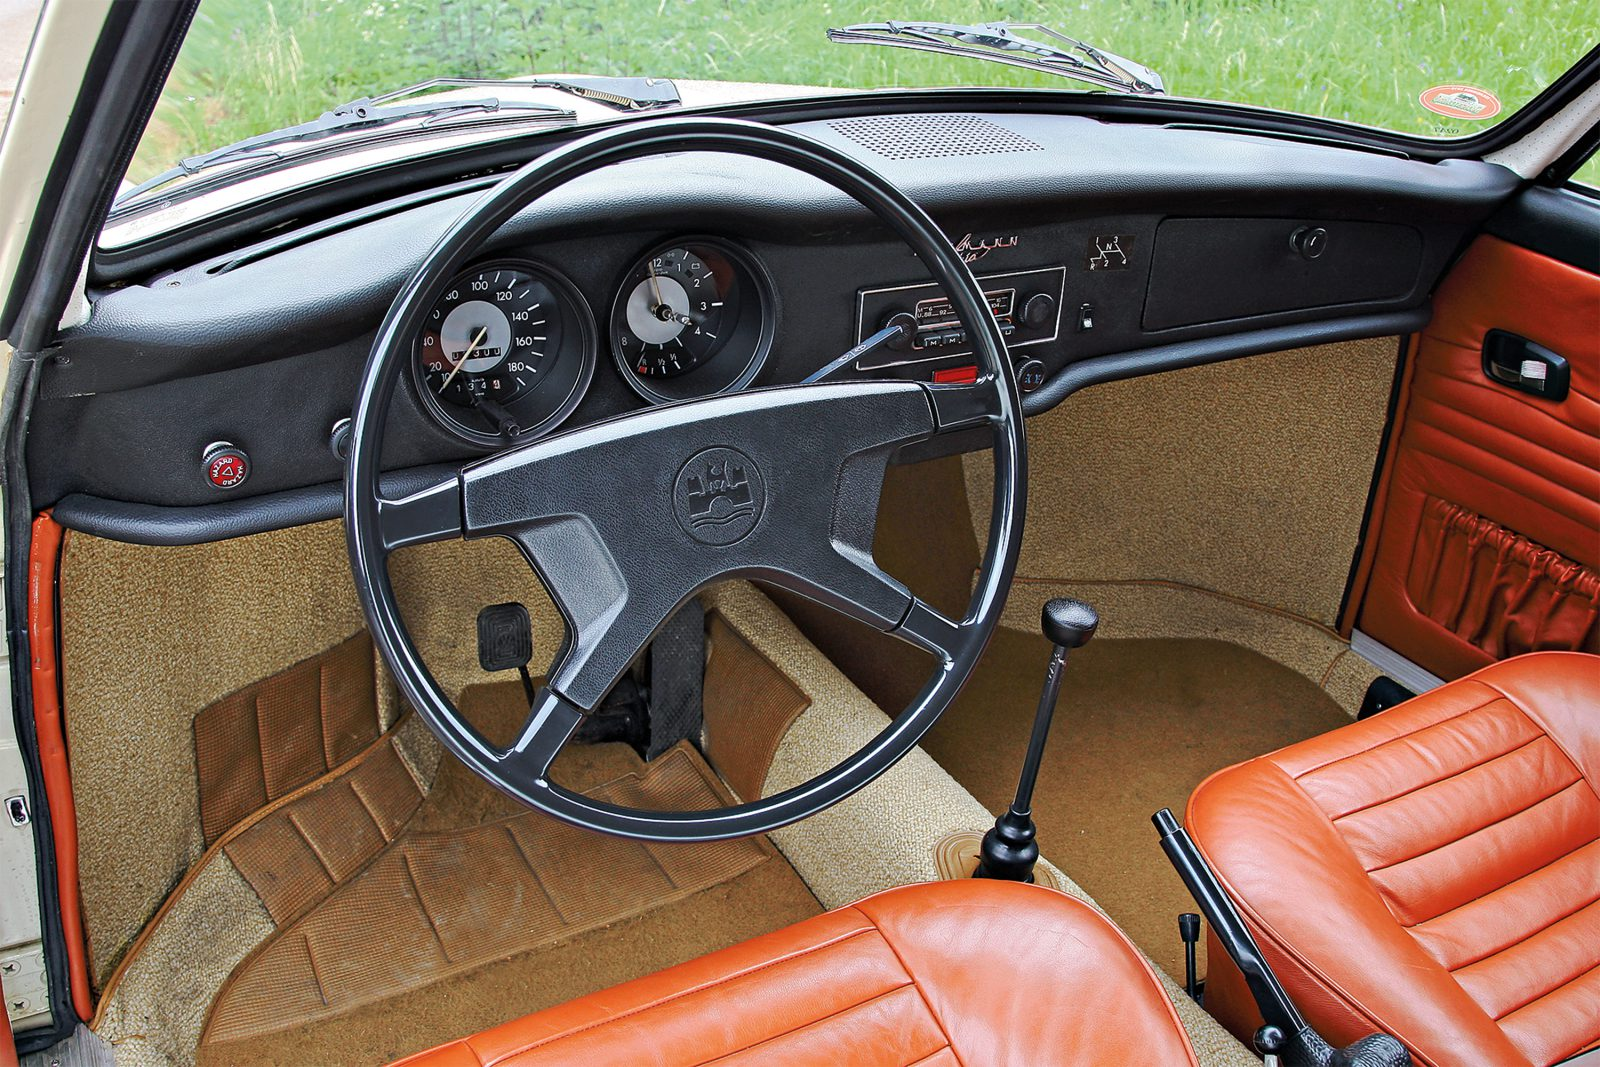 Volkswagen Karmann Ghia dashboard